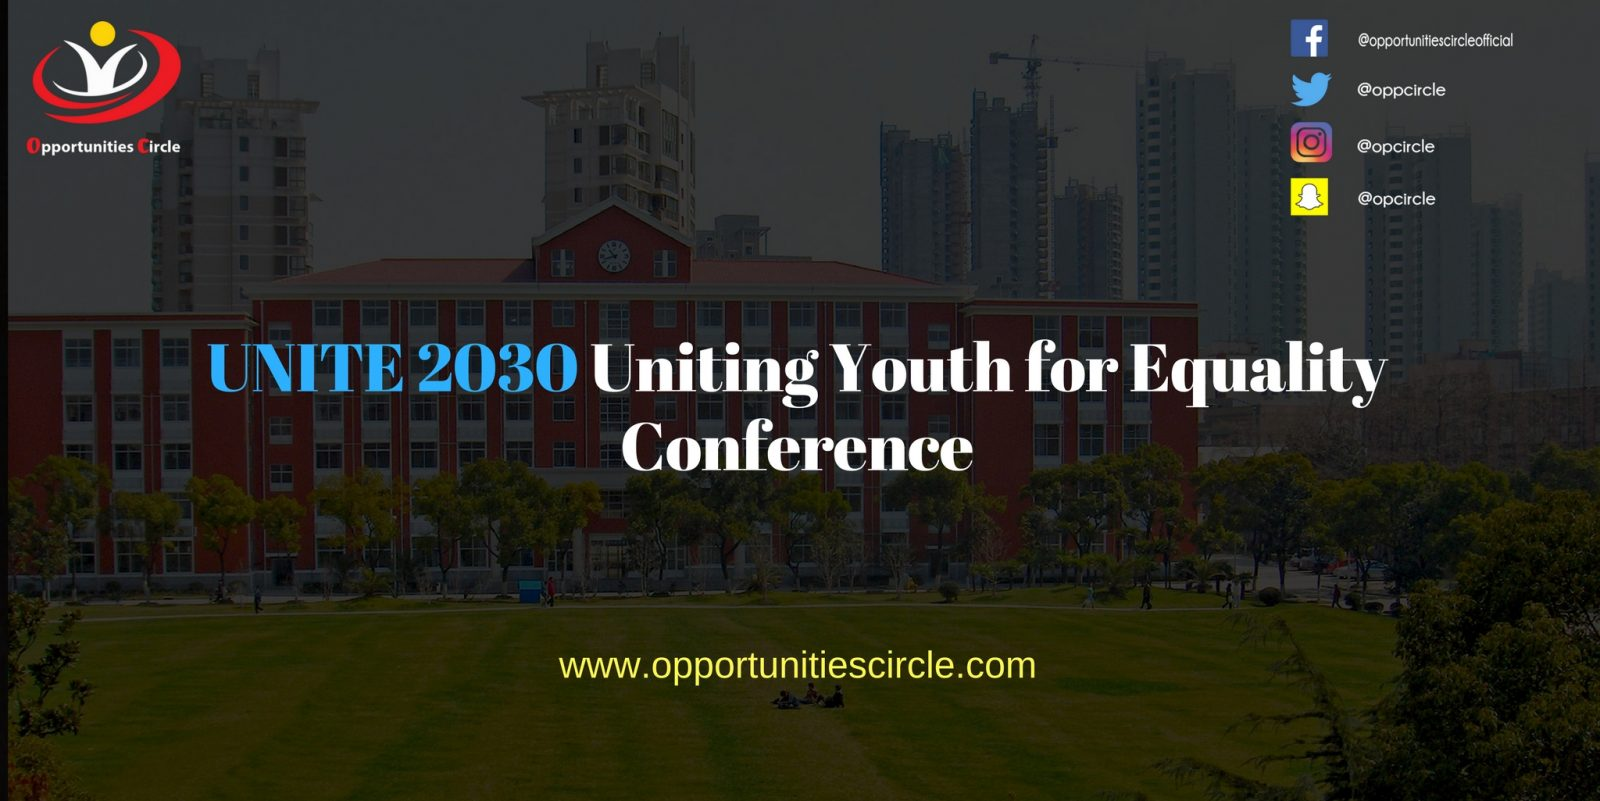 UNITE 2030 Uniting Youth for Equality Conference - UNITE 2030 Uniting Youth for Equality Conference